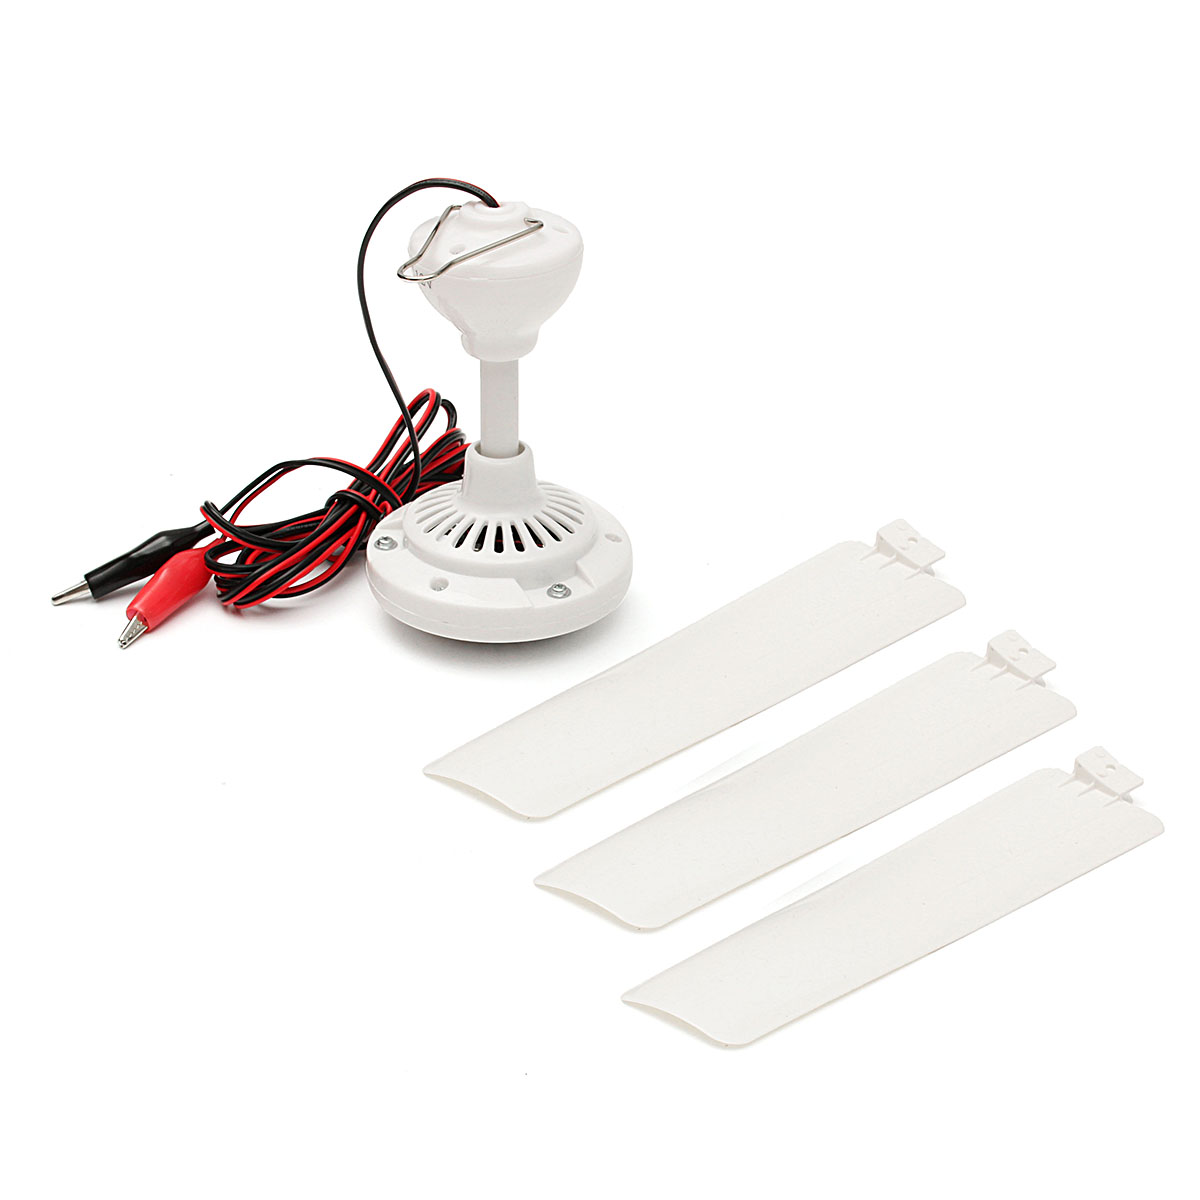 DC12V 6W 3 Leaves Brushless Converter Motor Battery Mini Hanging Ceiling Fan